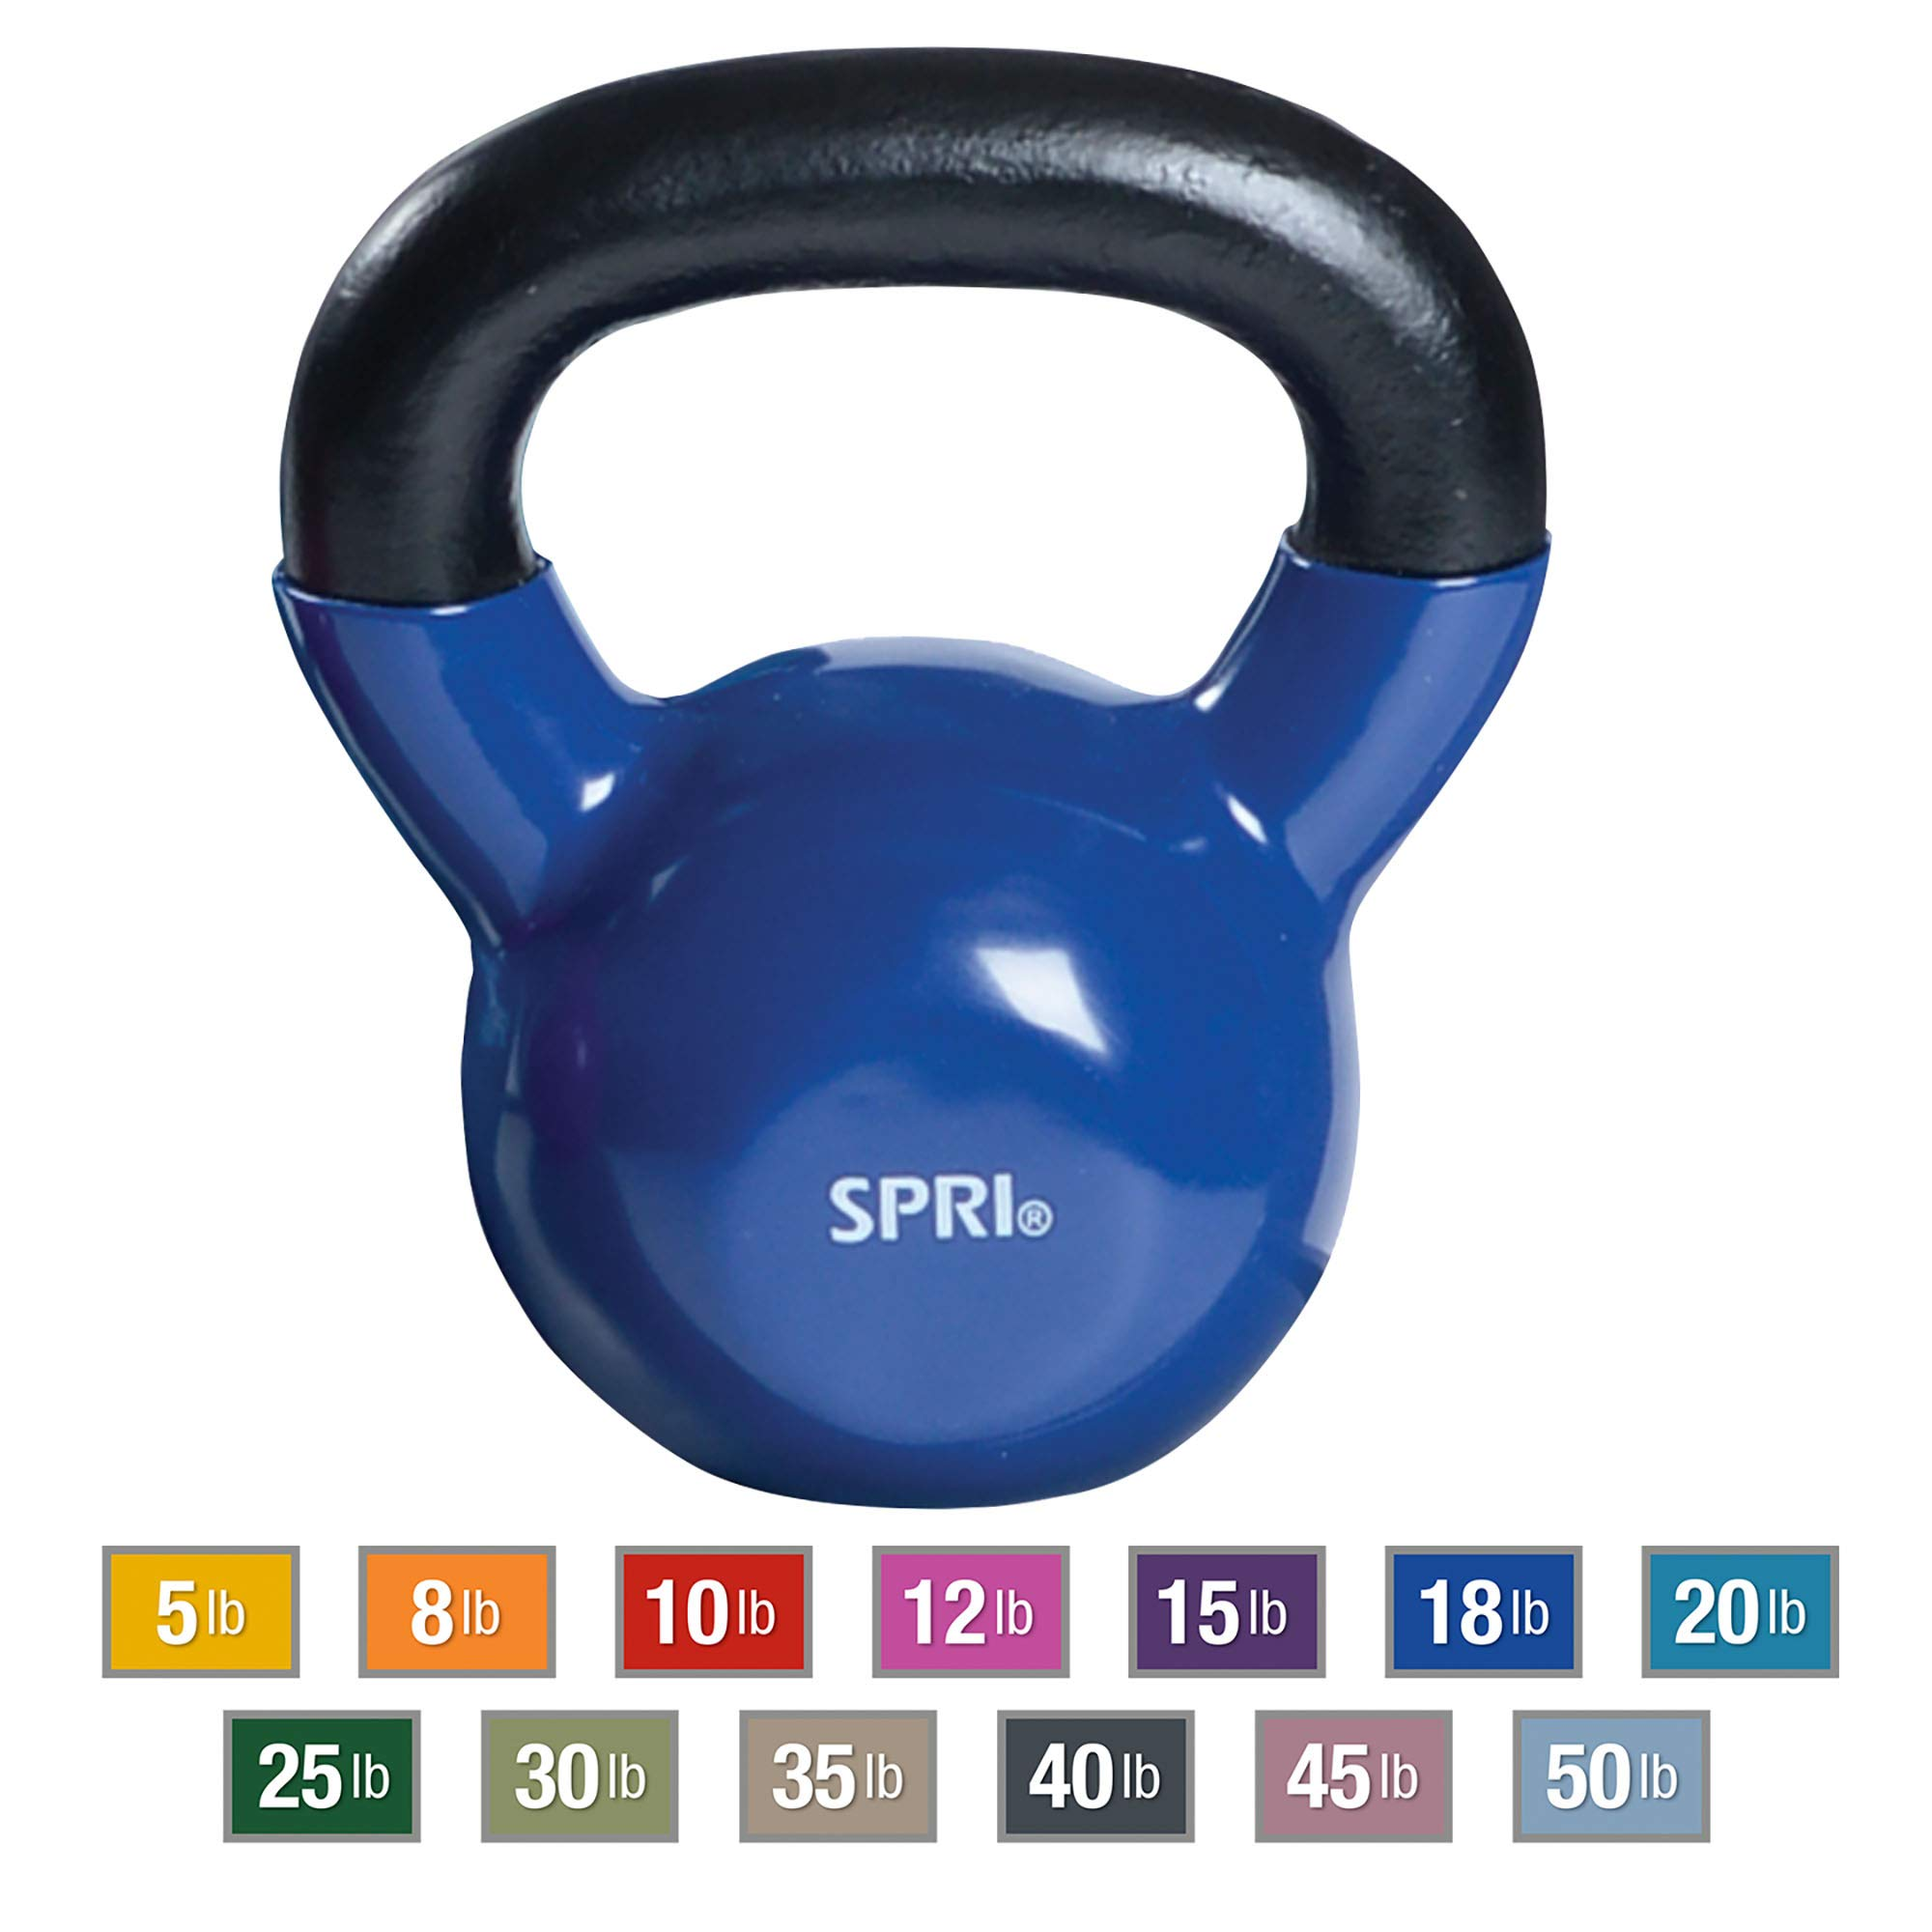 SPRI Kettlebell Weights Deluxe Cast Iron Vinyl Coated Comfort Grip Wide Handle Color Coded Kettlebell Weight Set (Blue, 18-Pound)